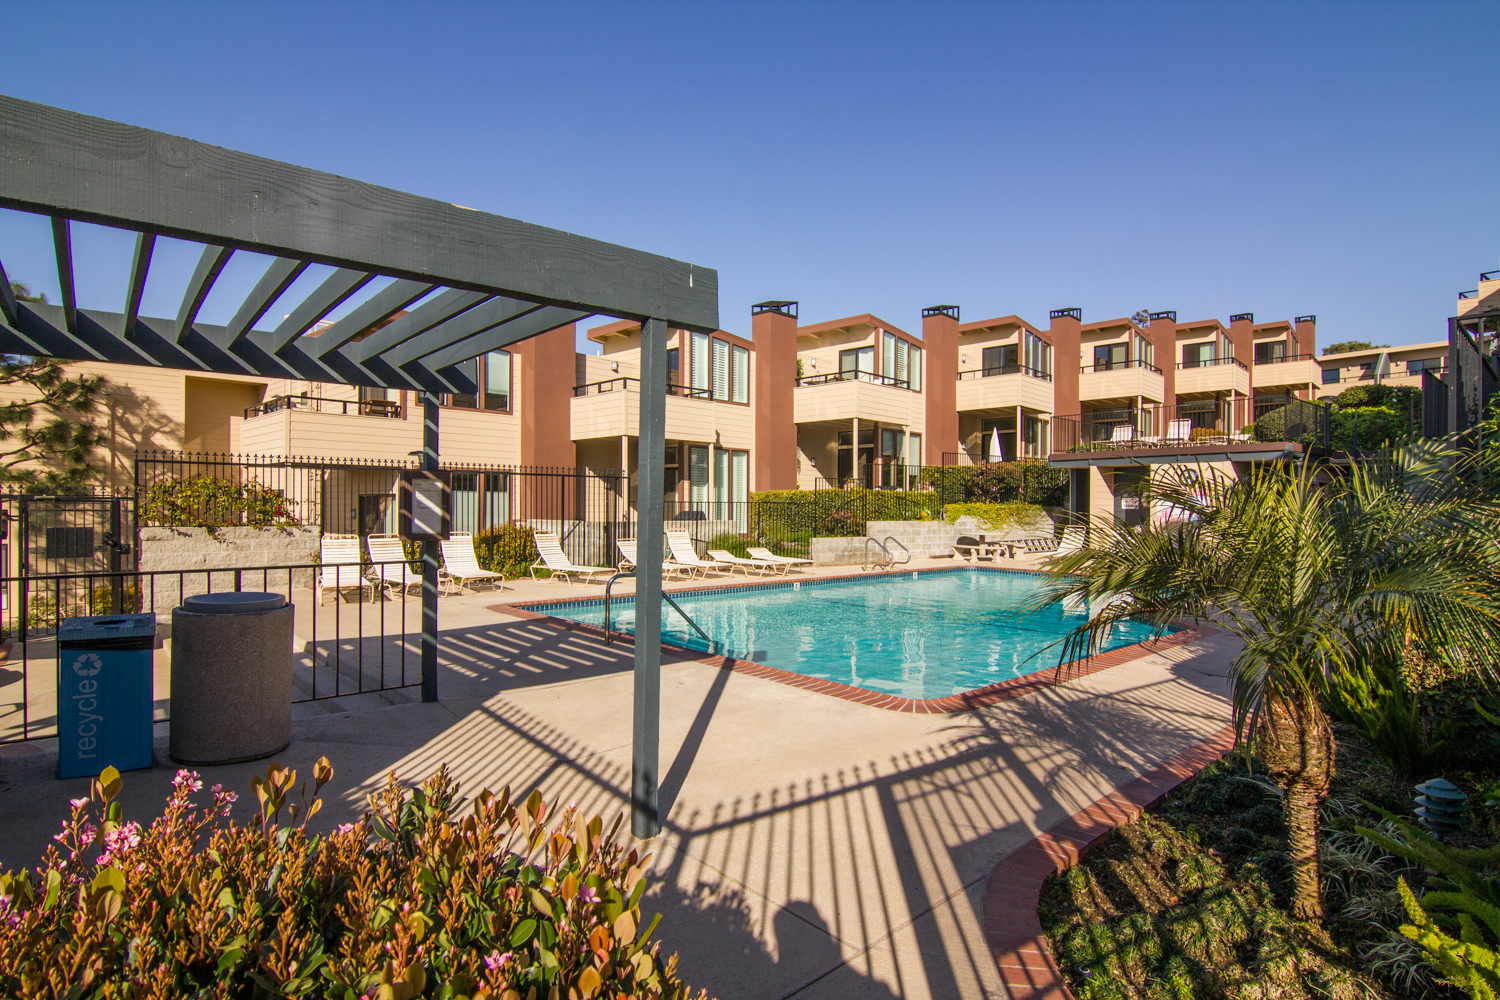 One-of-the-pools-at-Village-Palos-Verdes